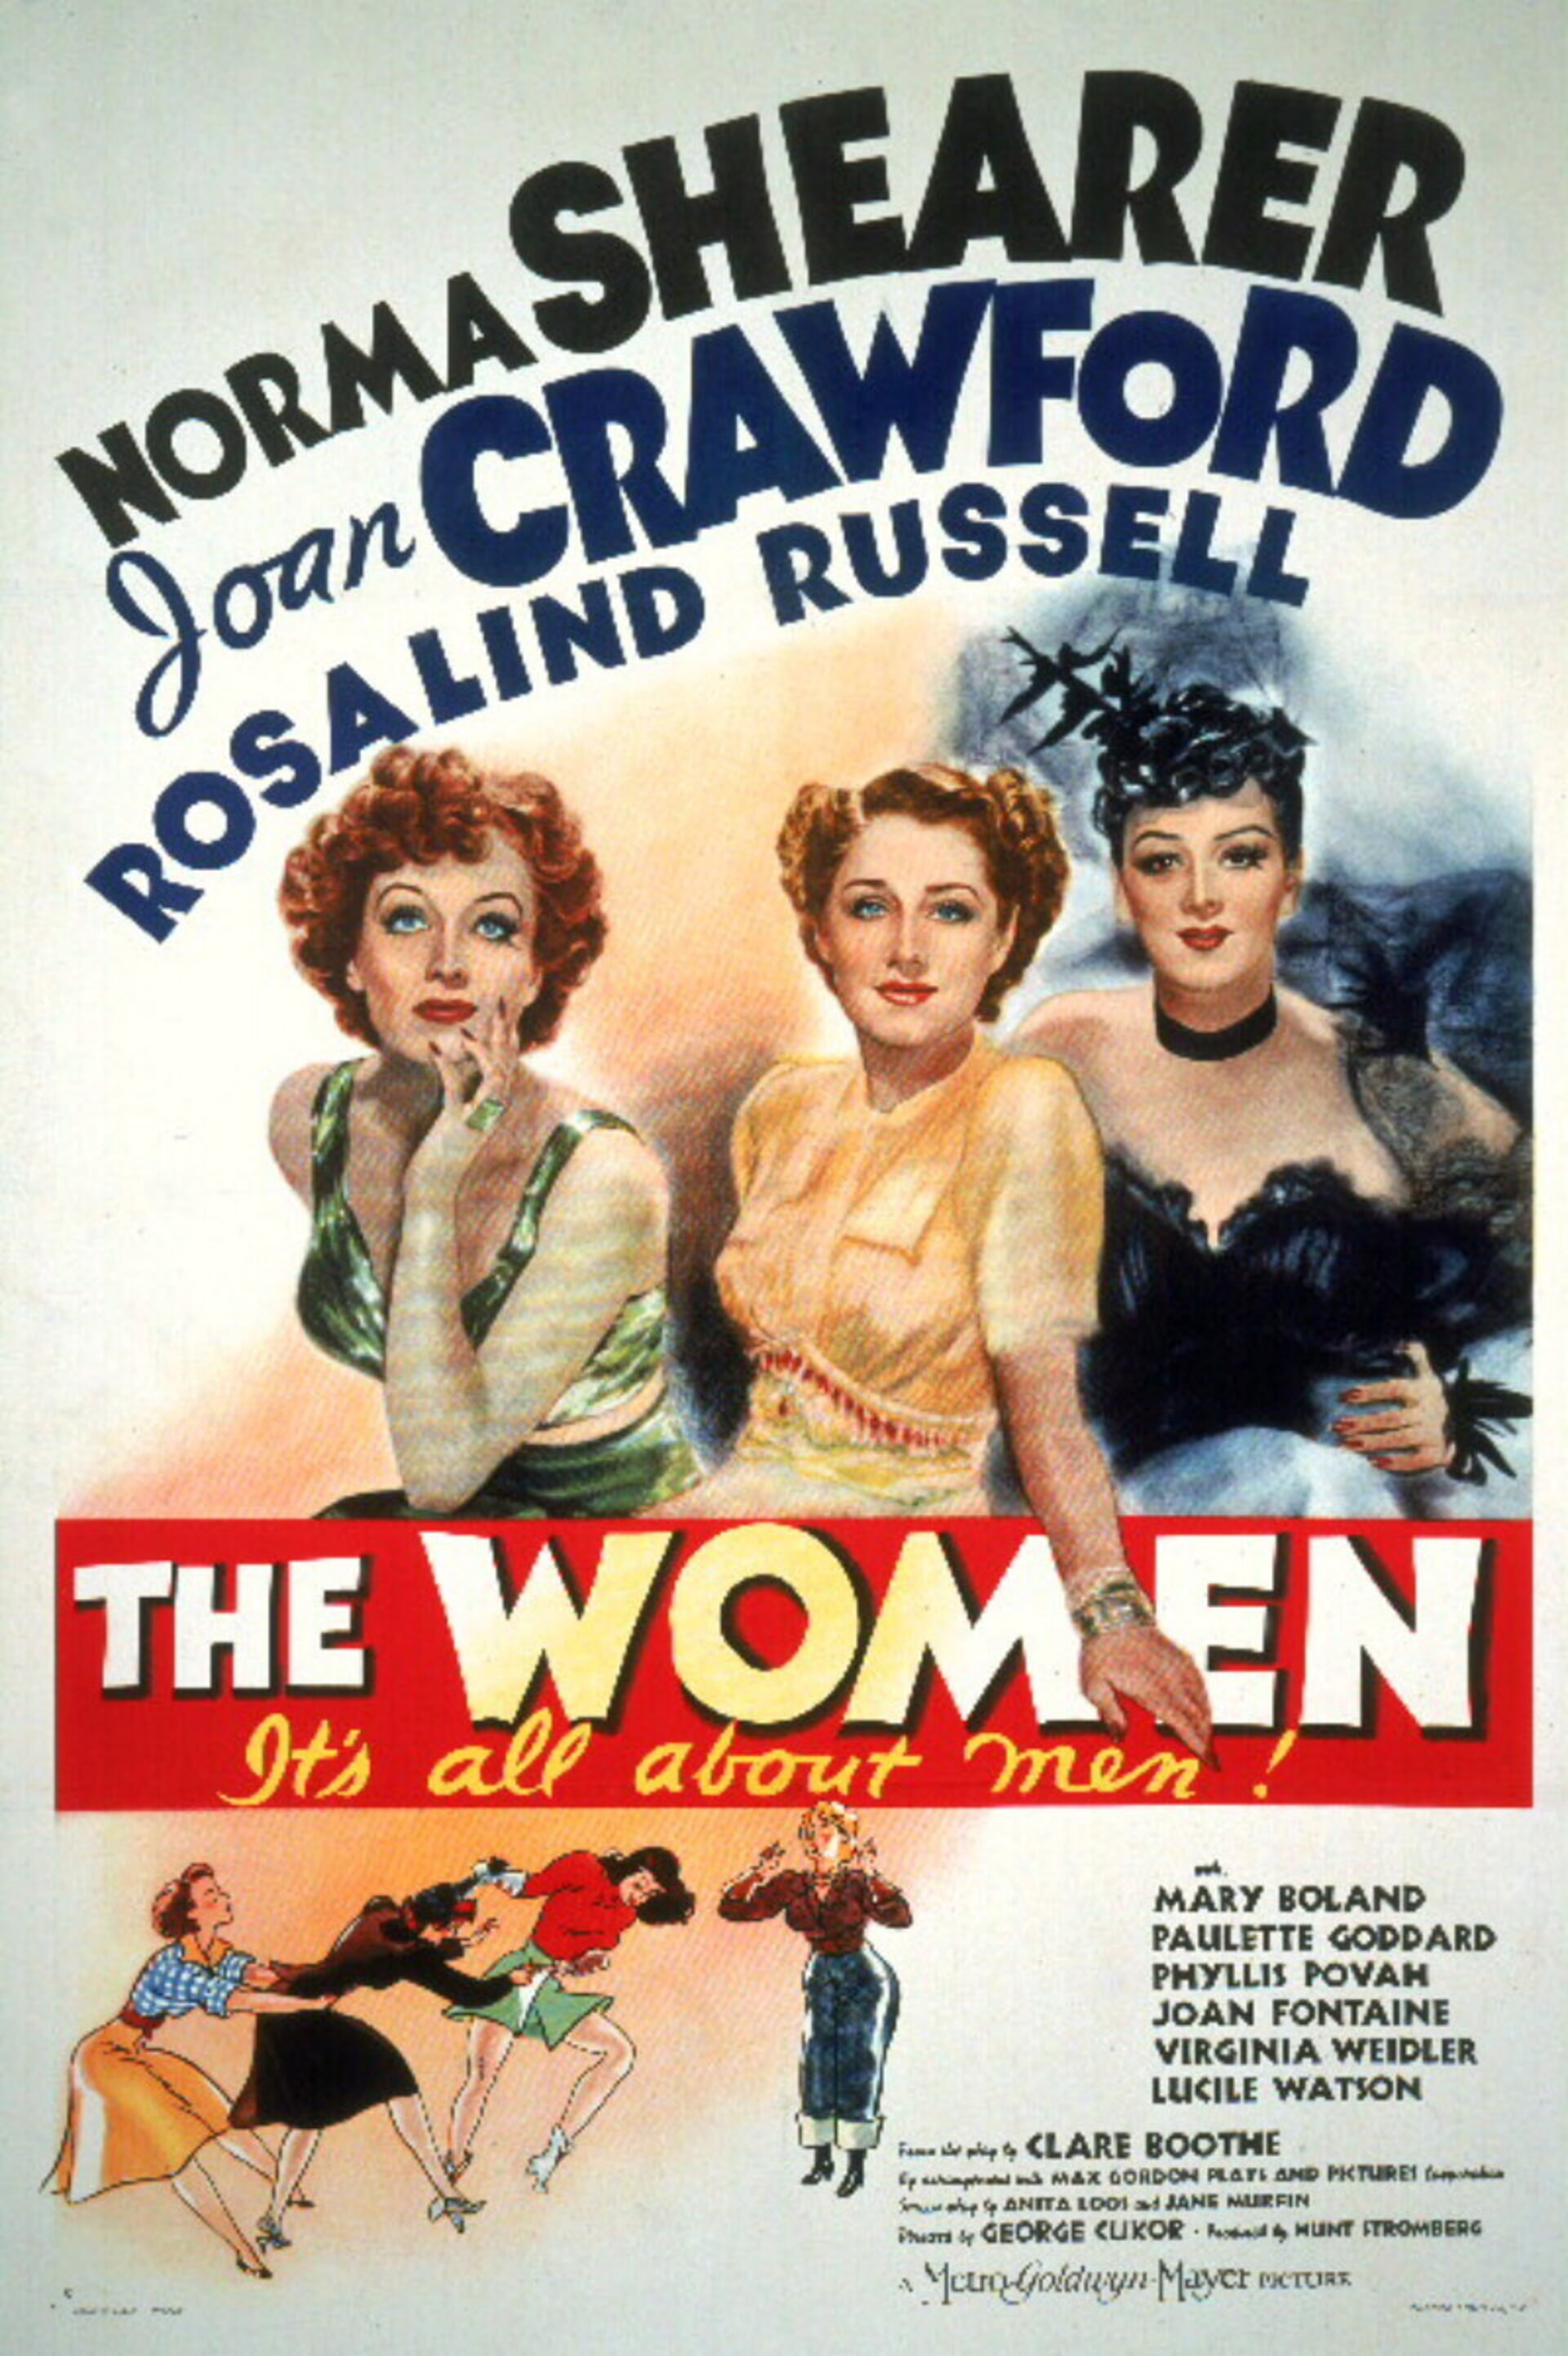 The Women (1939) - Poster 8